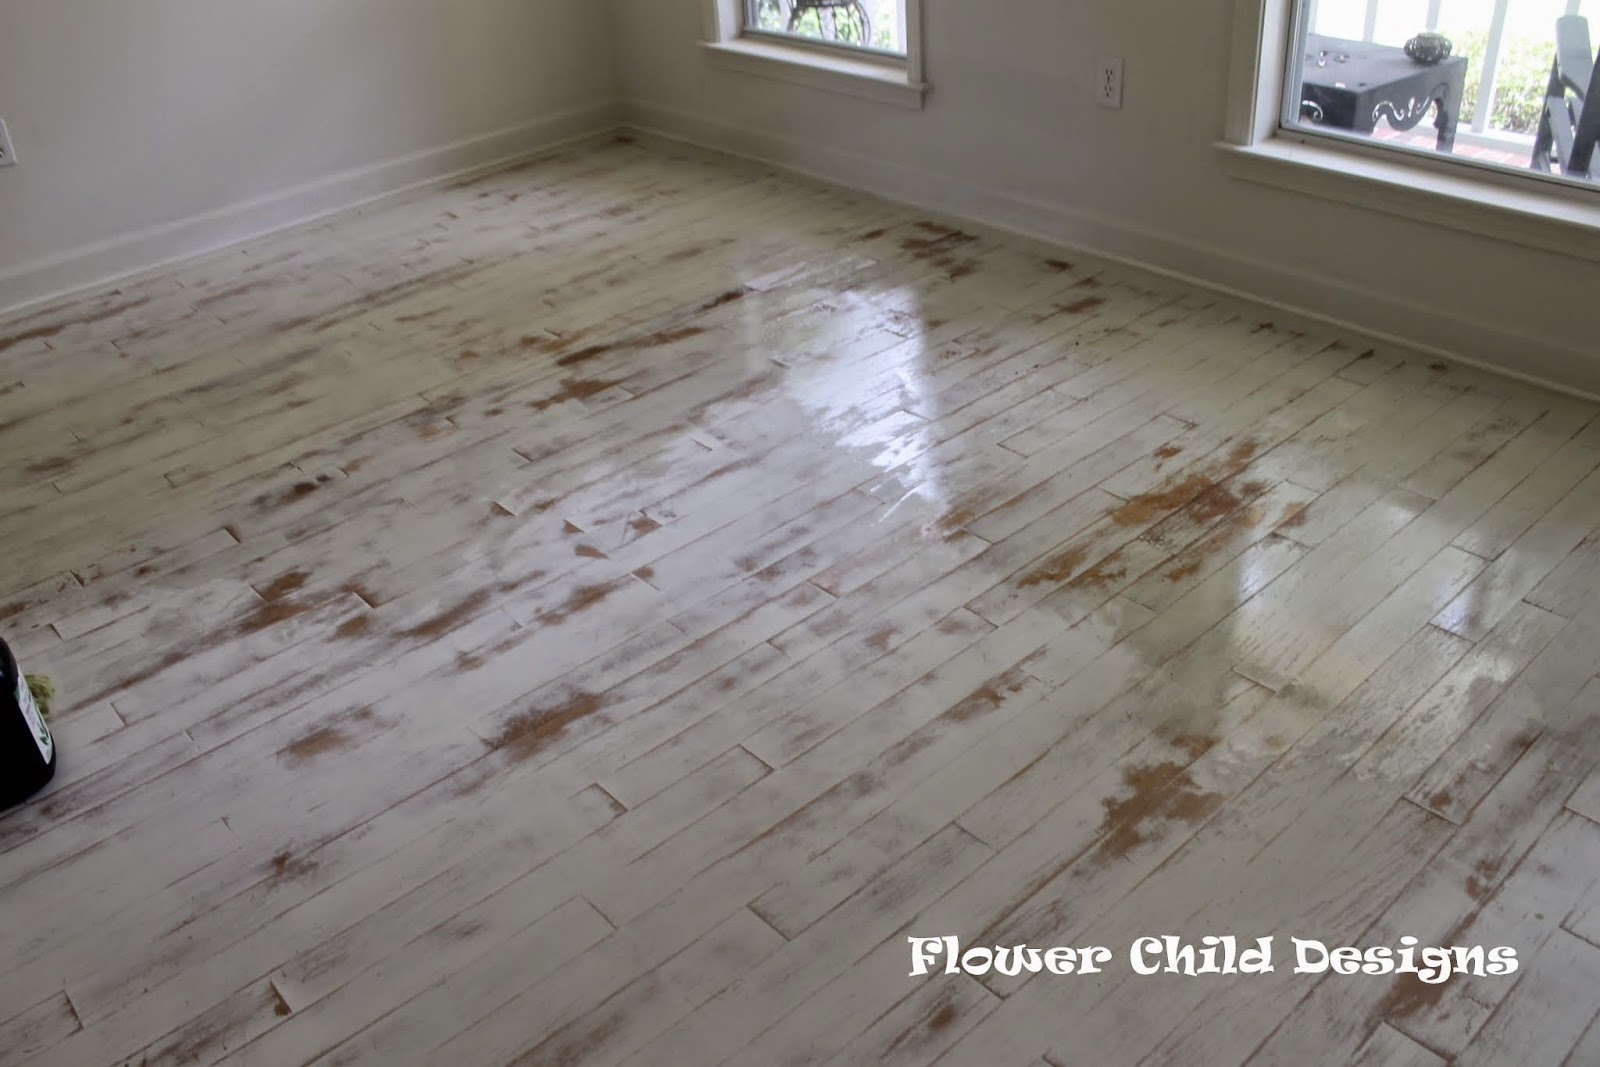 Flower Child Designs: Oh Yes I Did Paint My Wood Floors, Thank You Very  Much!